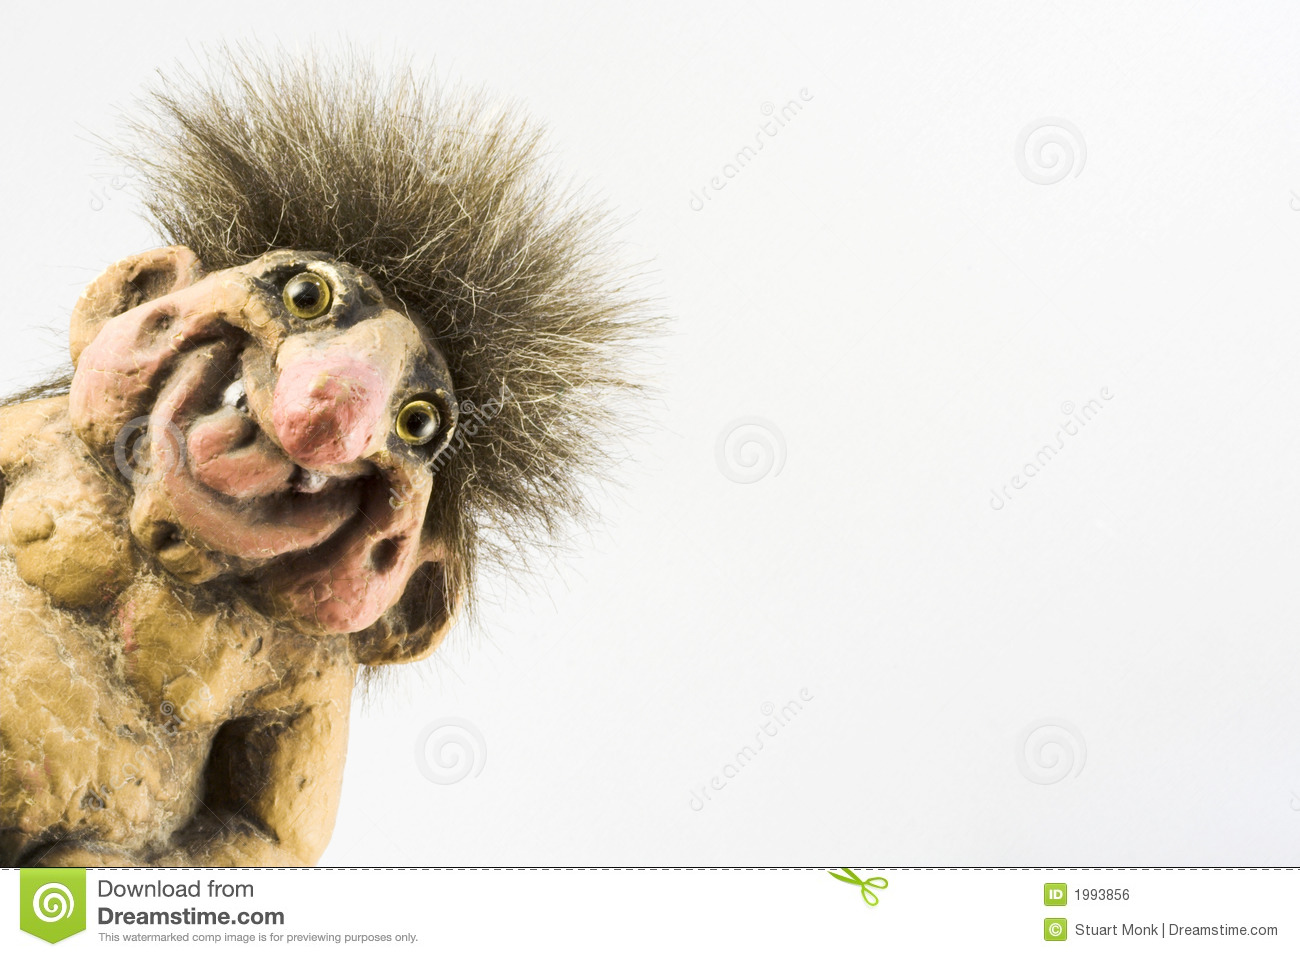 Souvenir Troll Stock Images - 124 Photos